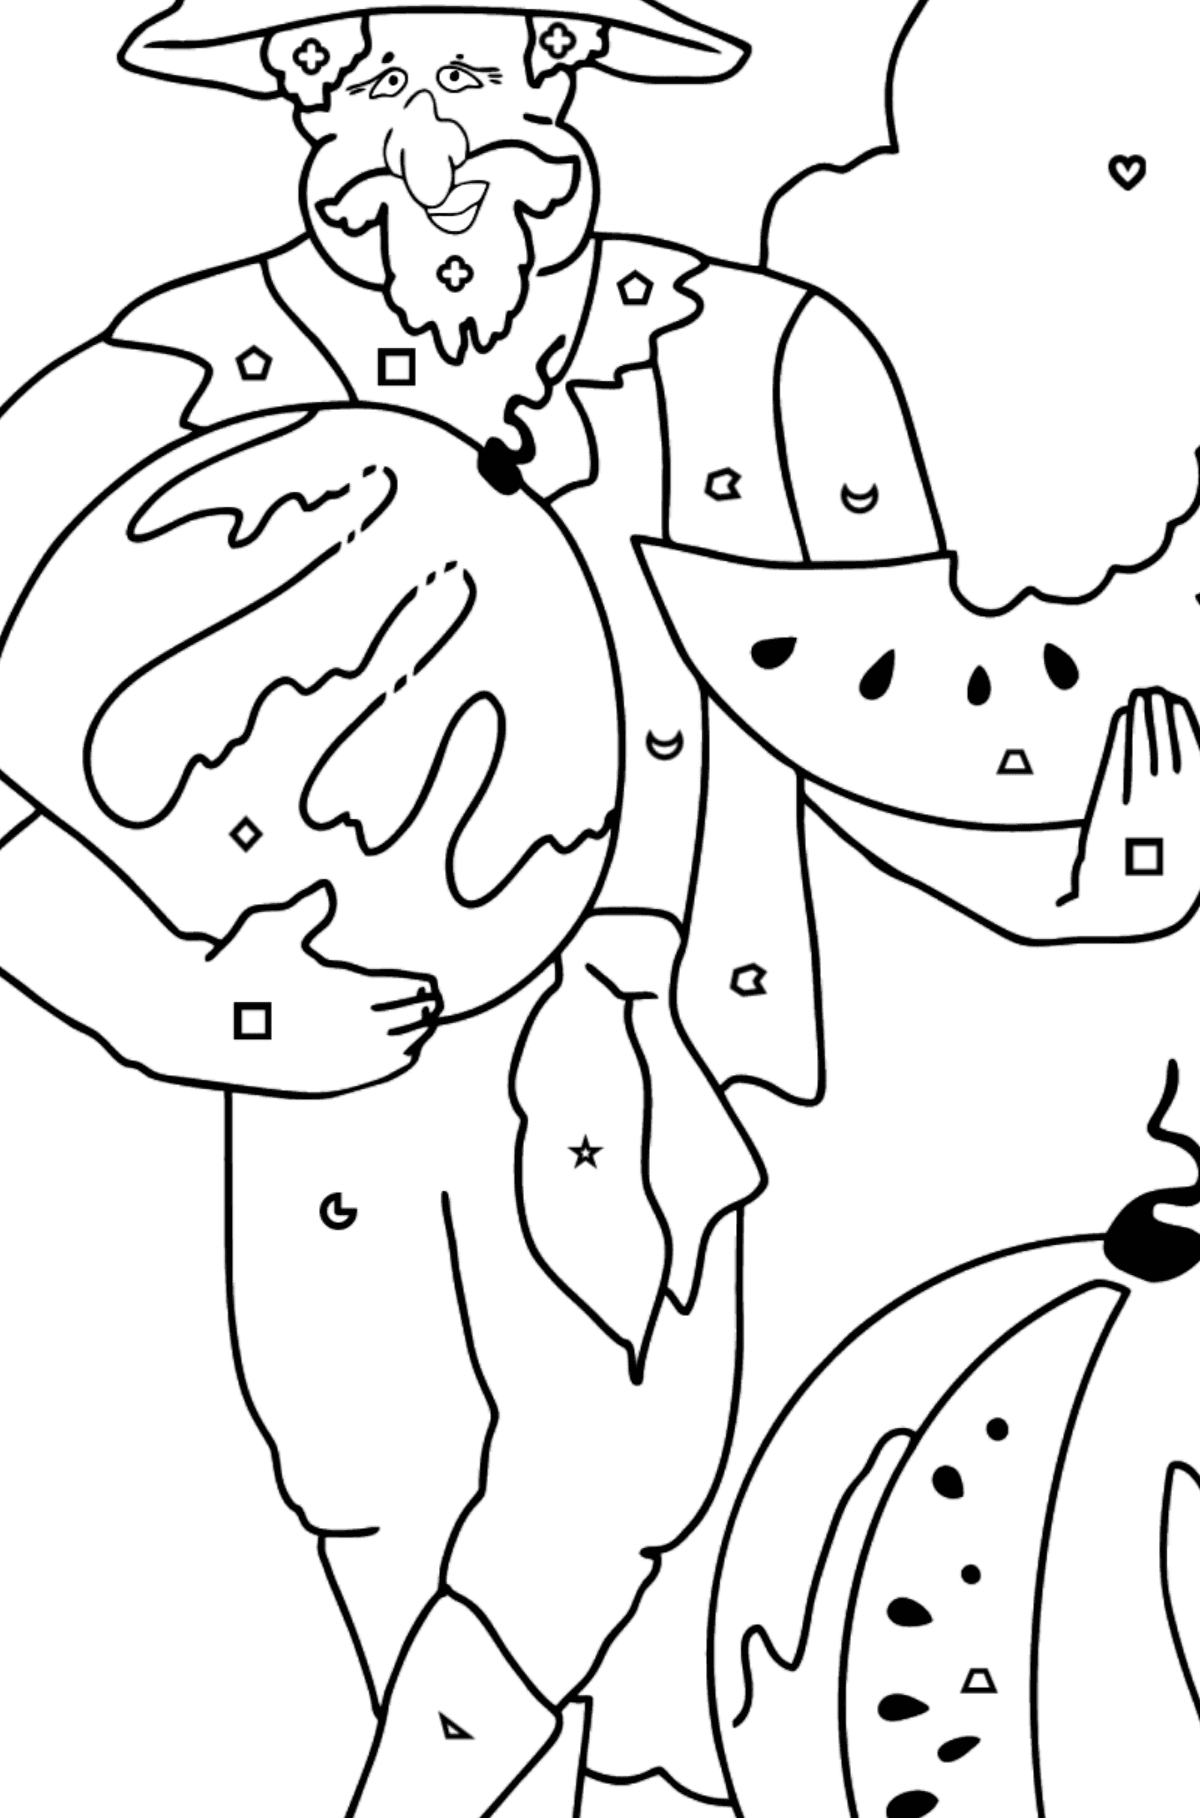 Coloring Page - A Pirate is Eating a Tasty Watermelon - Coloring by Geometric Shapes for Kids